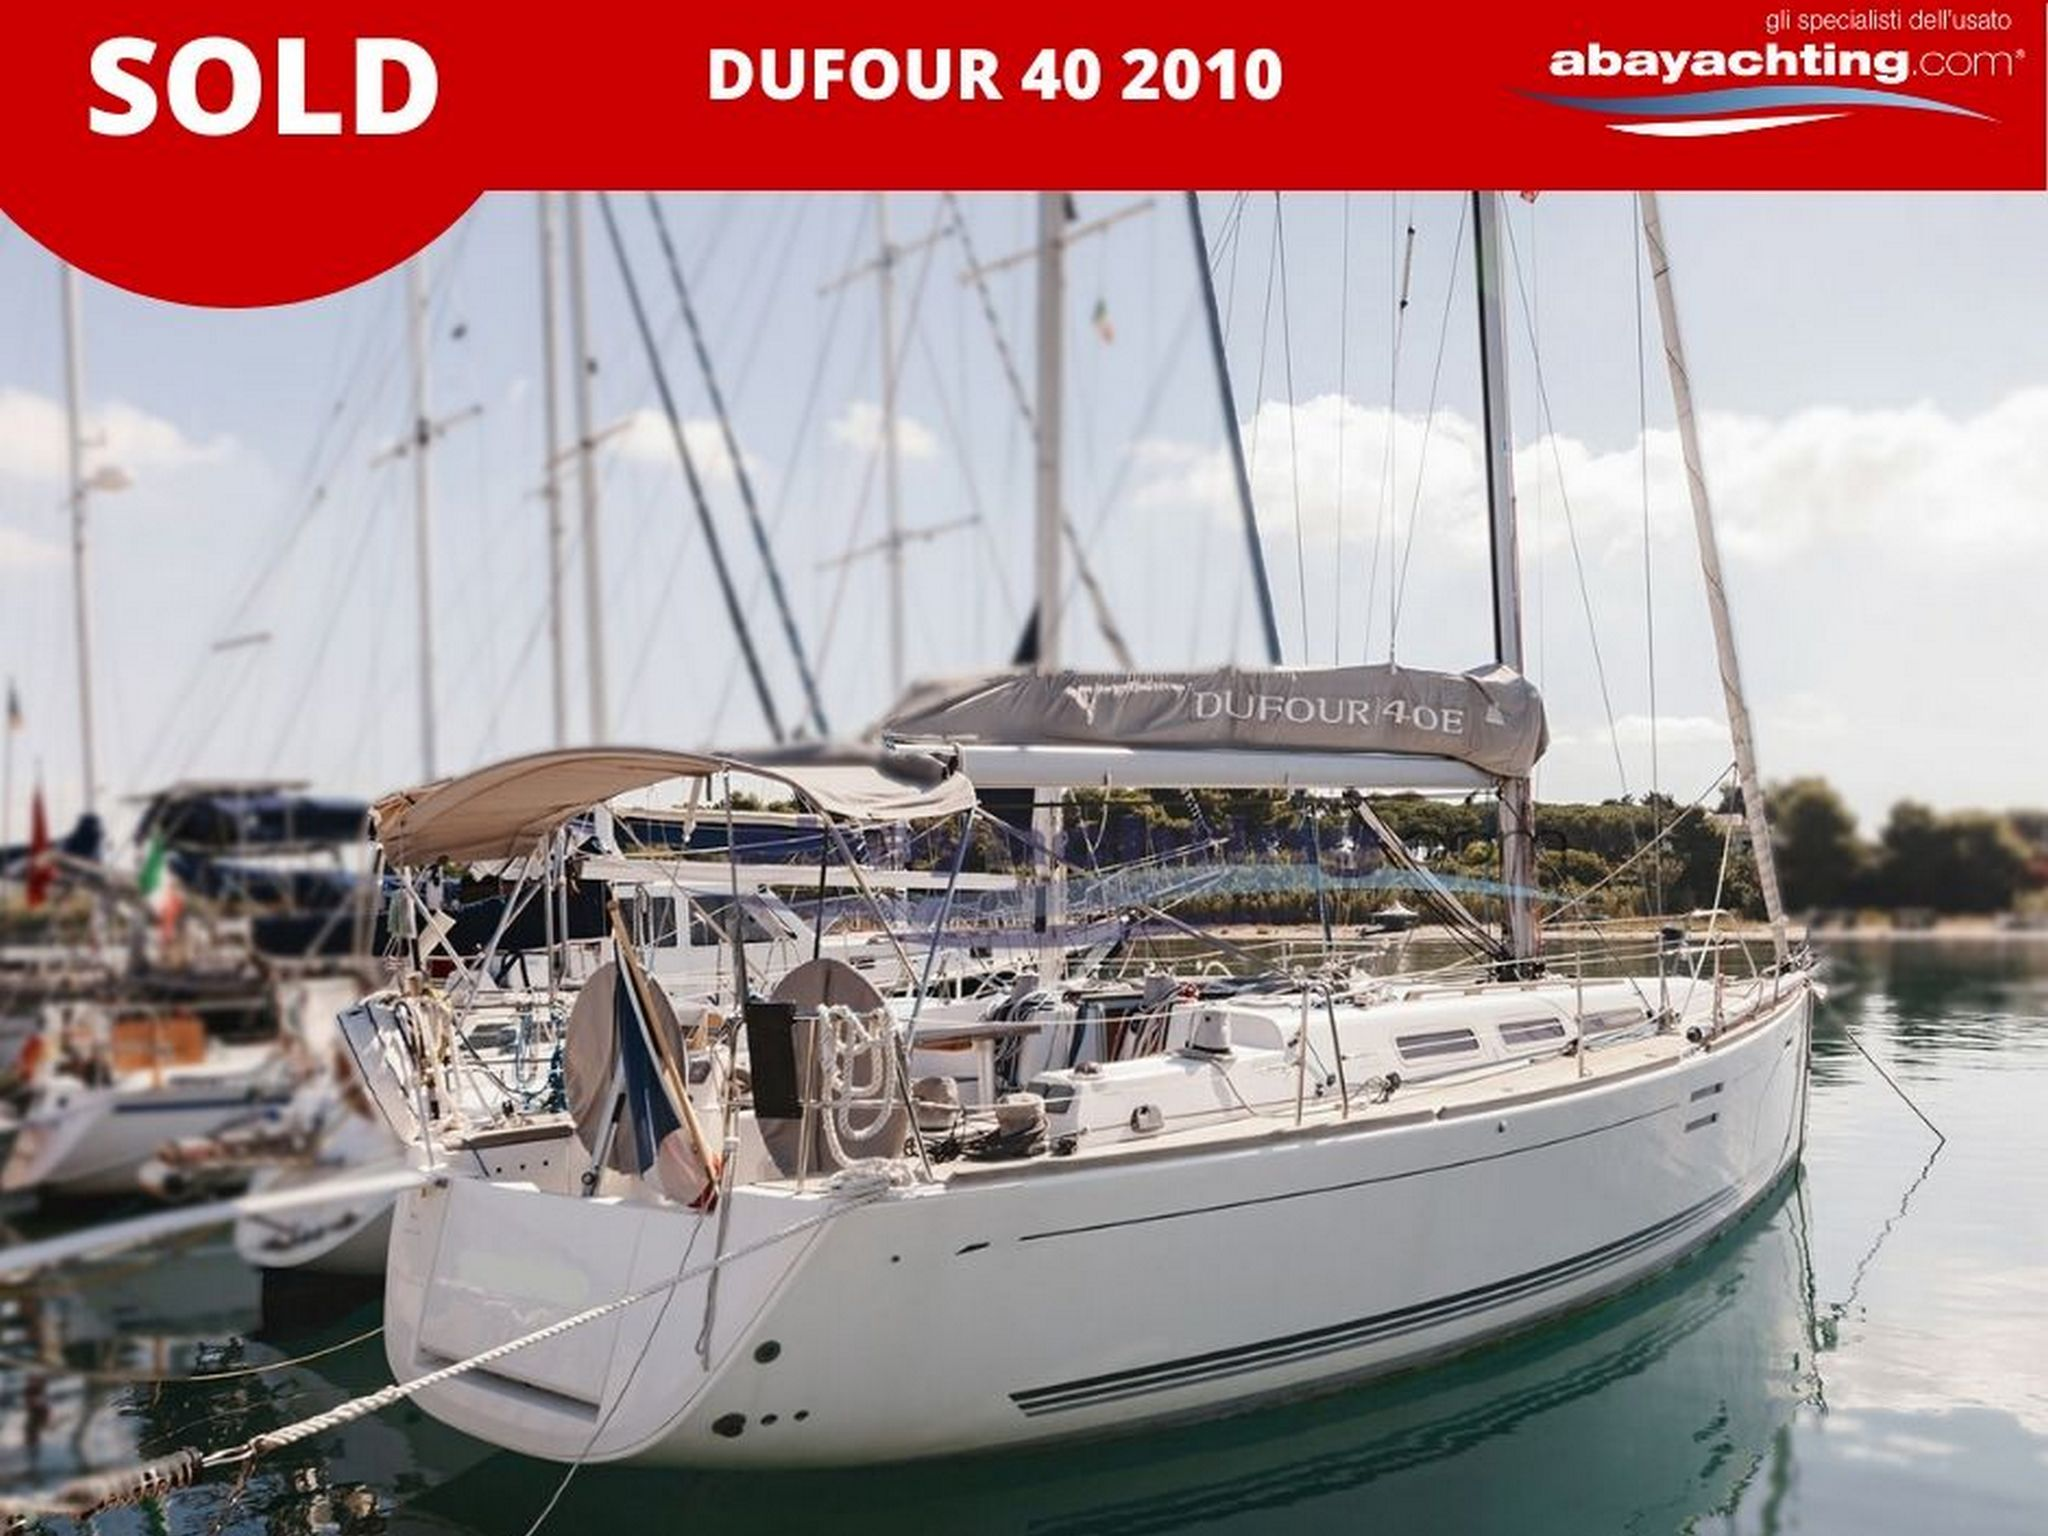 Dufour 40 2010 sold